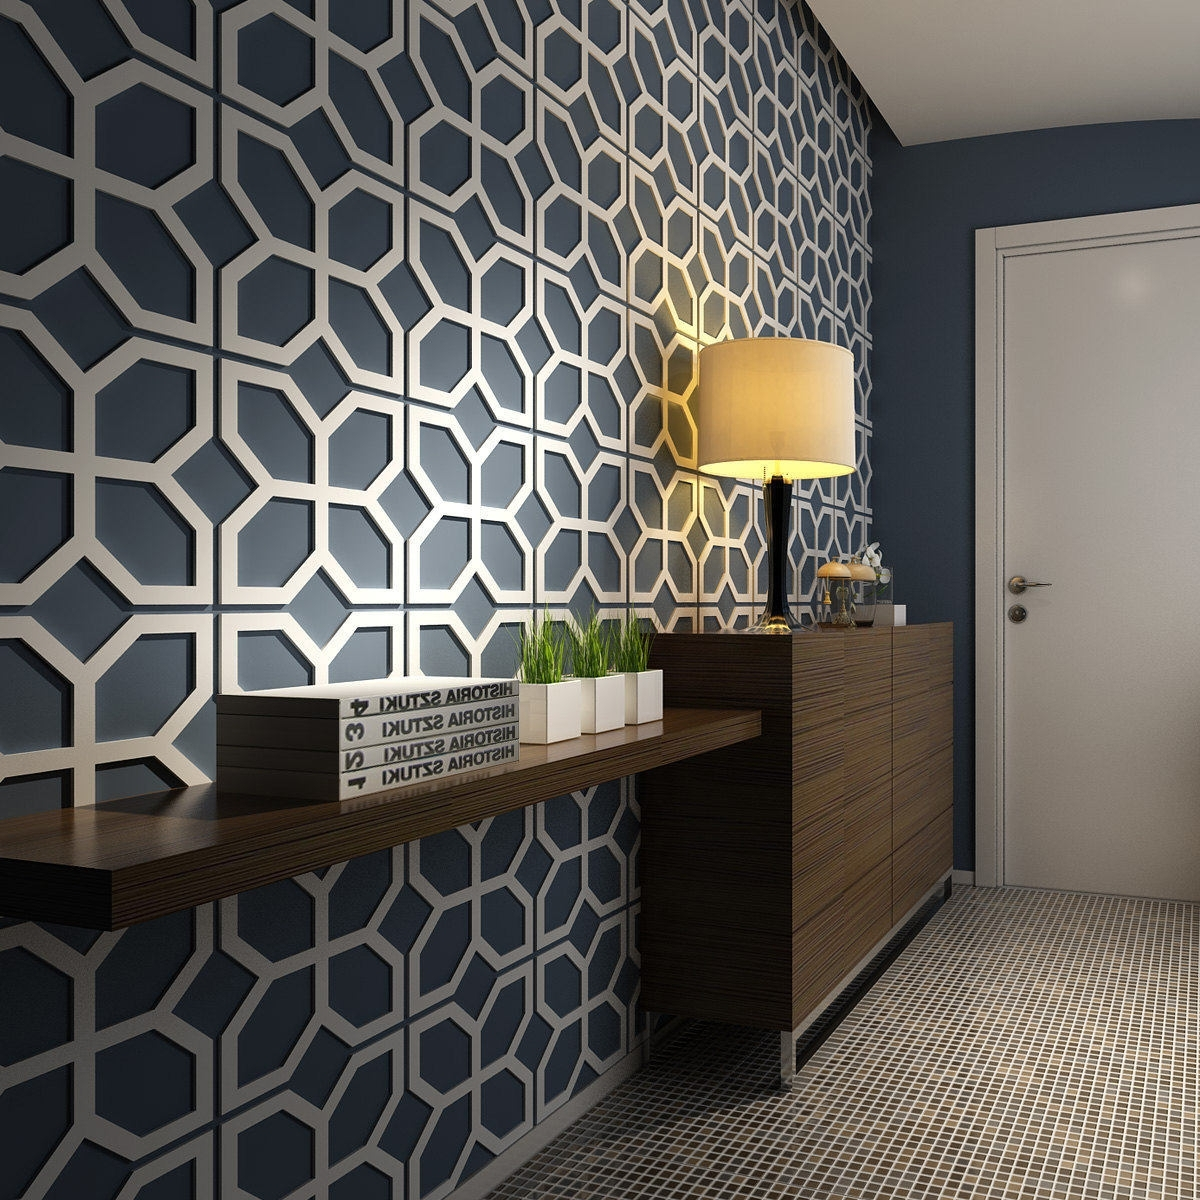 Fashionable 3d Wall Panels Wall Art In Moroccan Decor Decorative Wall Panels 3d Wall Panels (View 14 of 15)